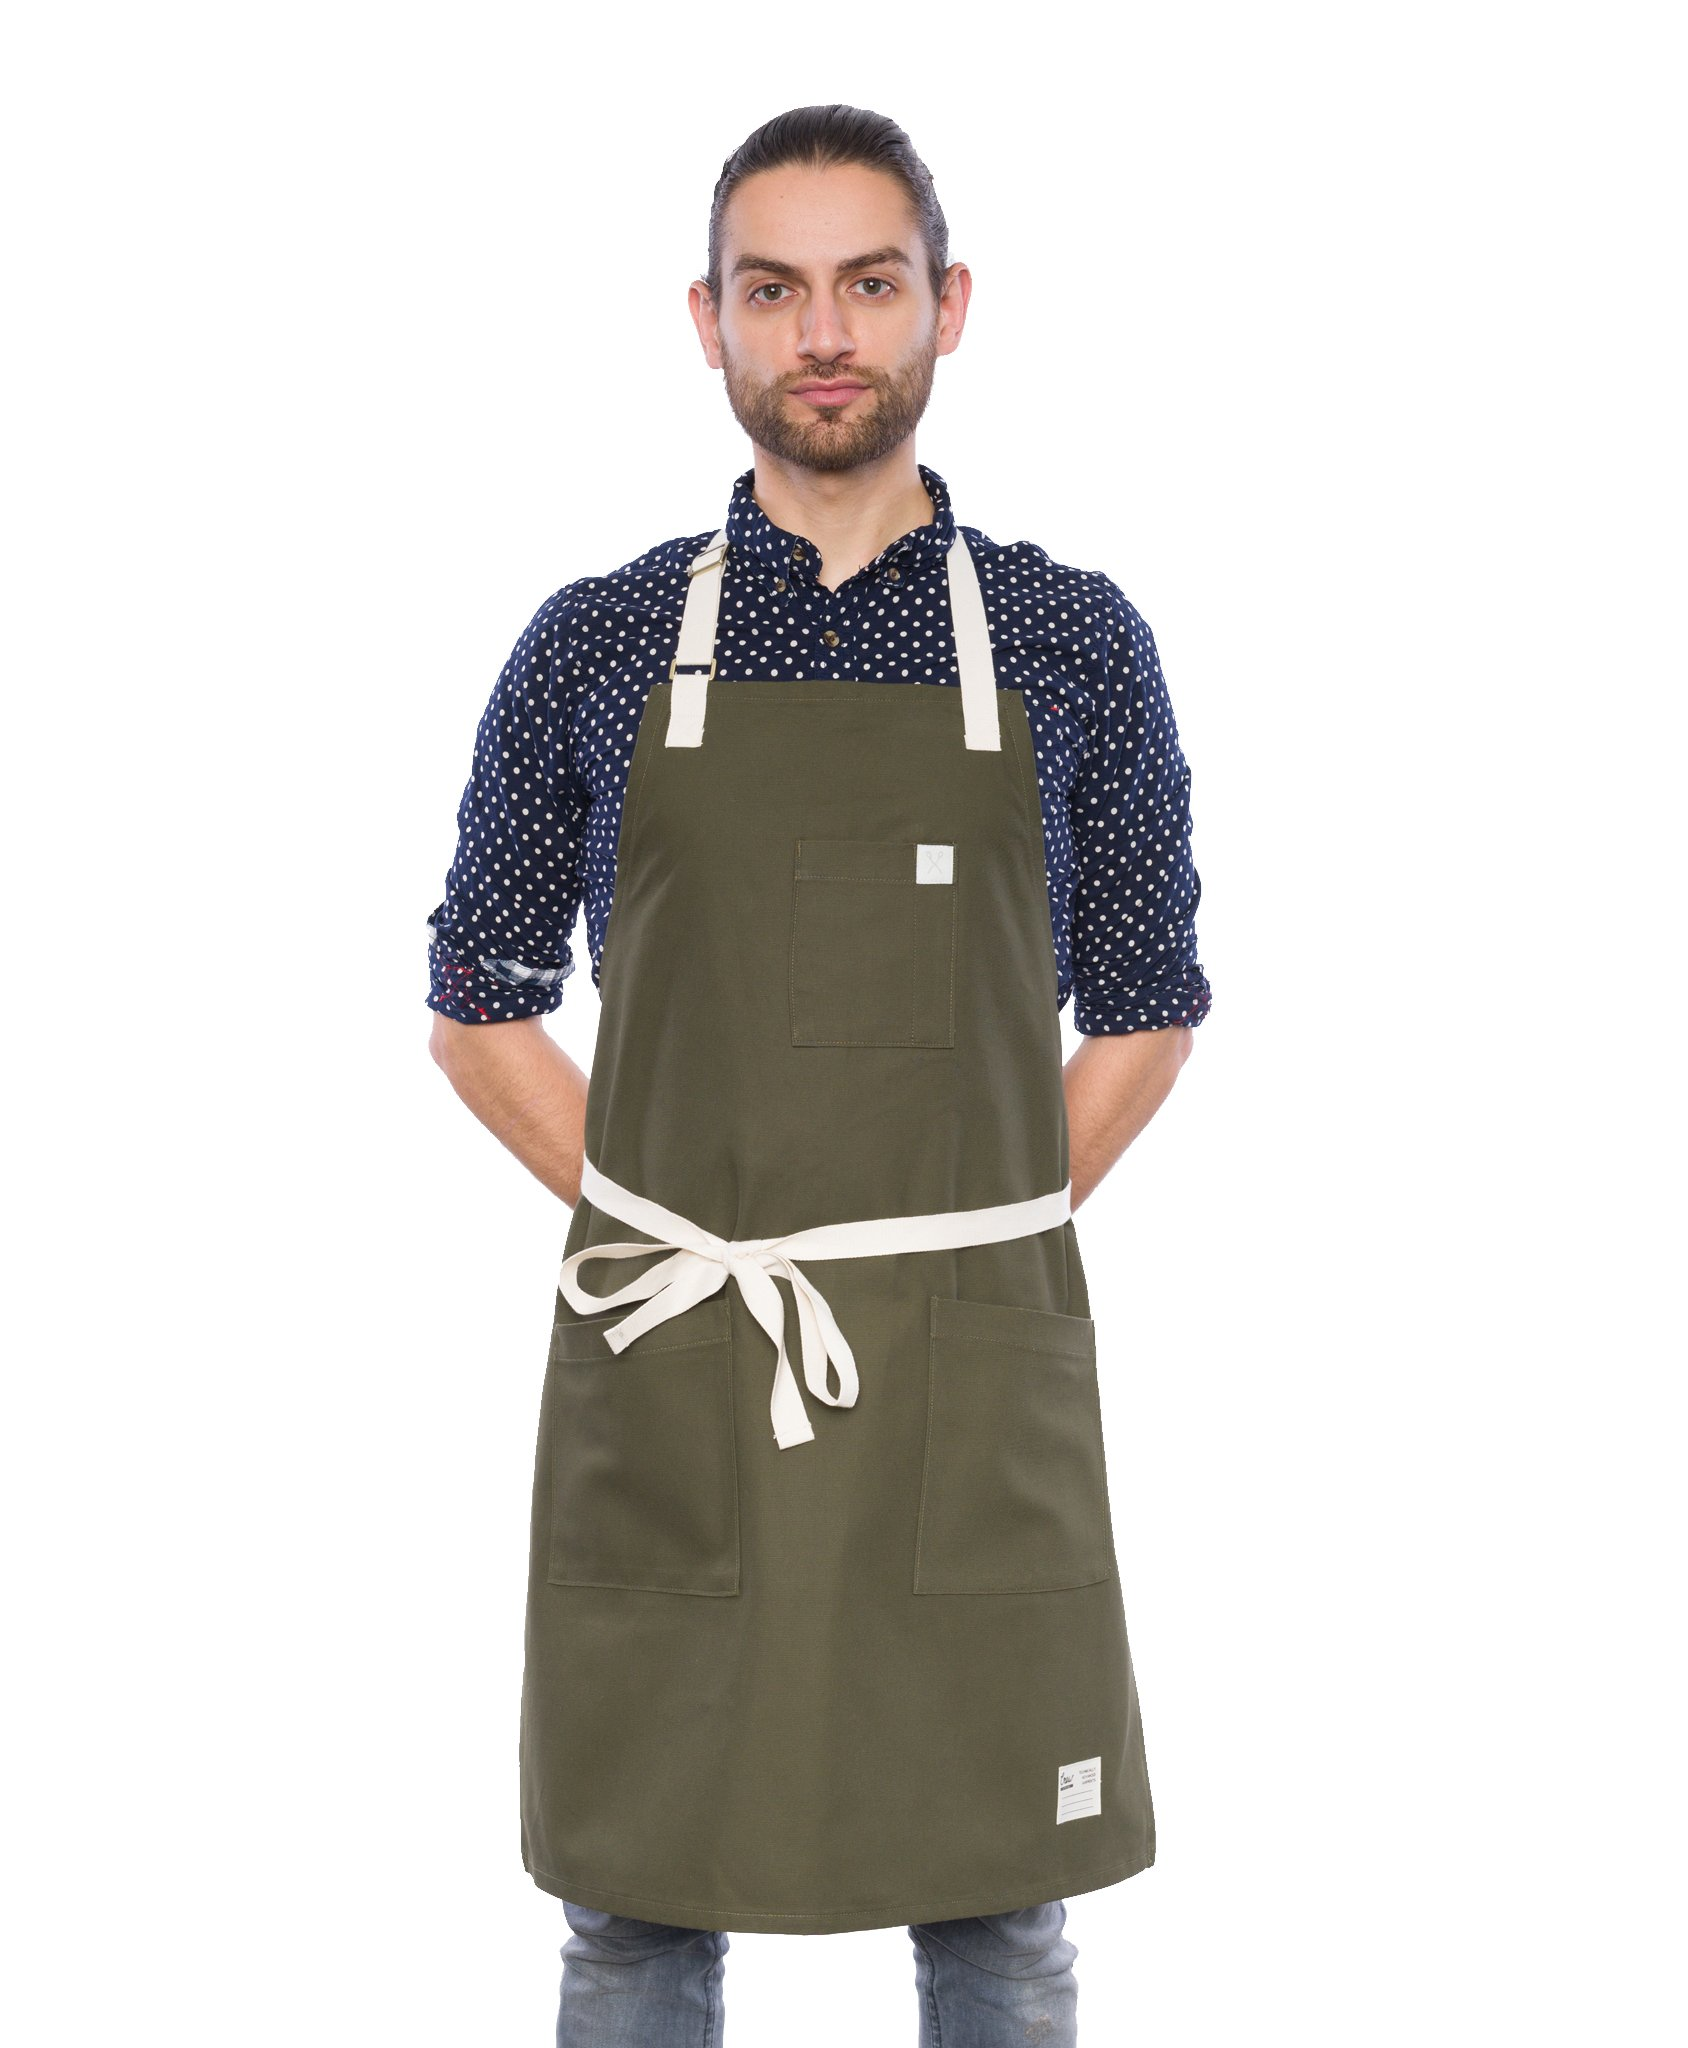 Crew Apparel Olive Gardener Standard American Brushed Canvas Apron Made in USA by Crew Apparel